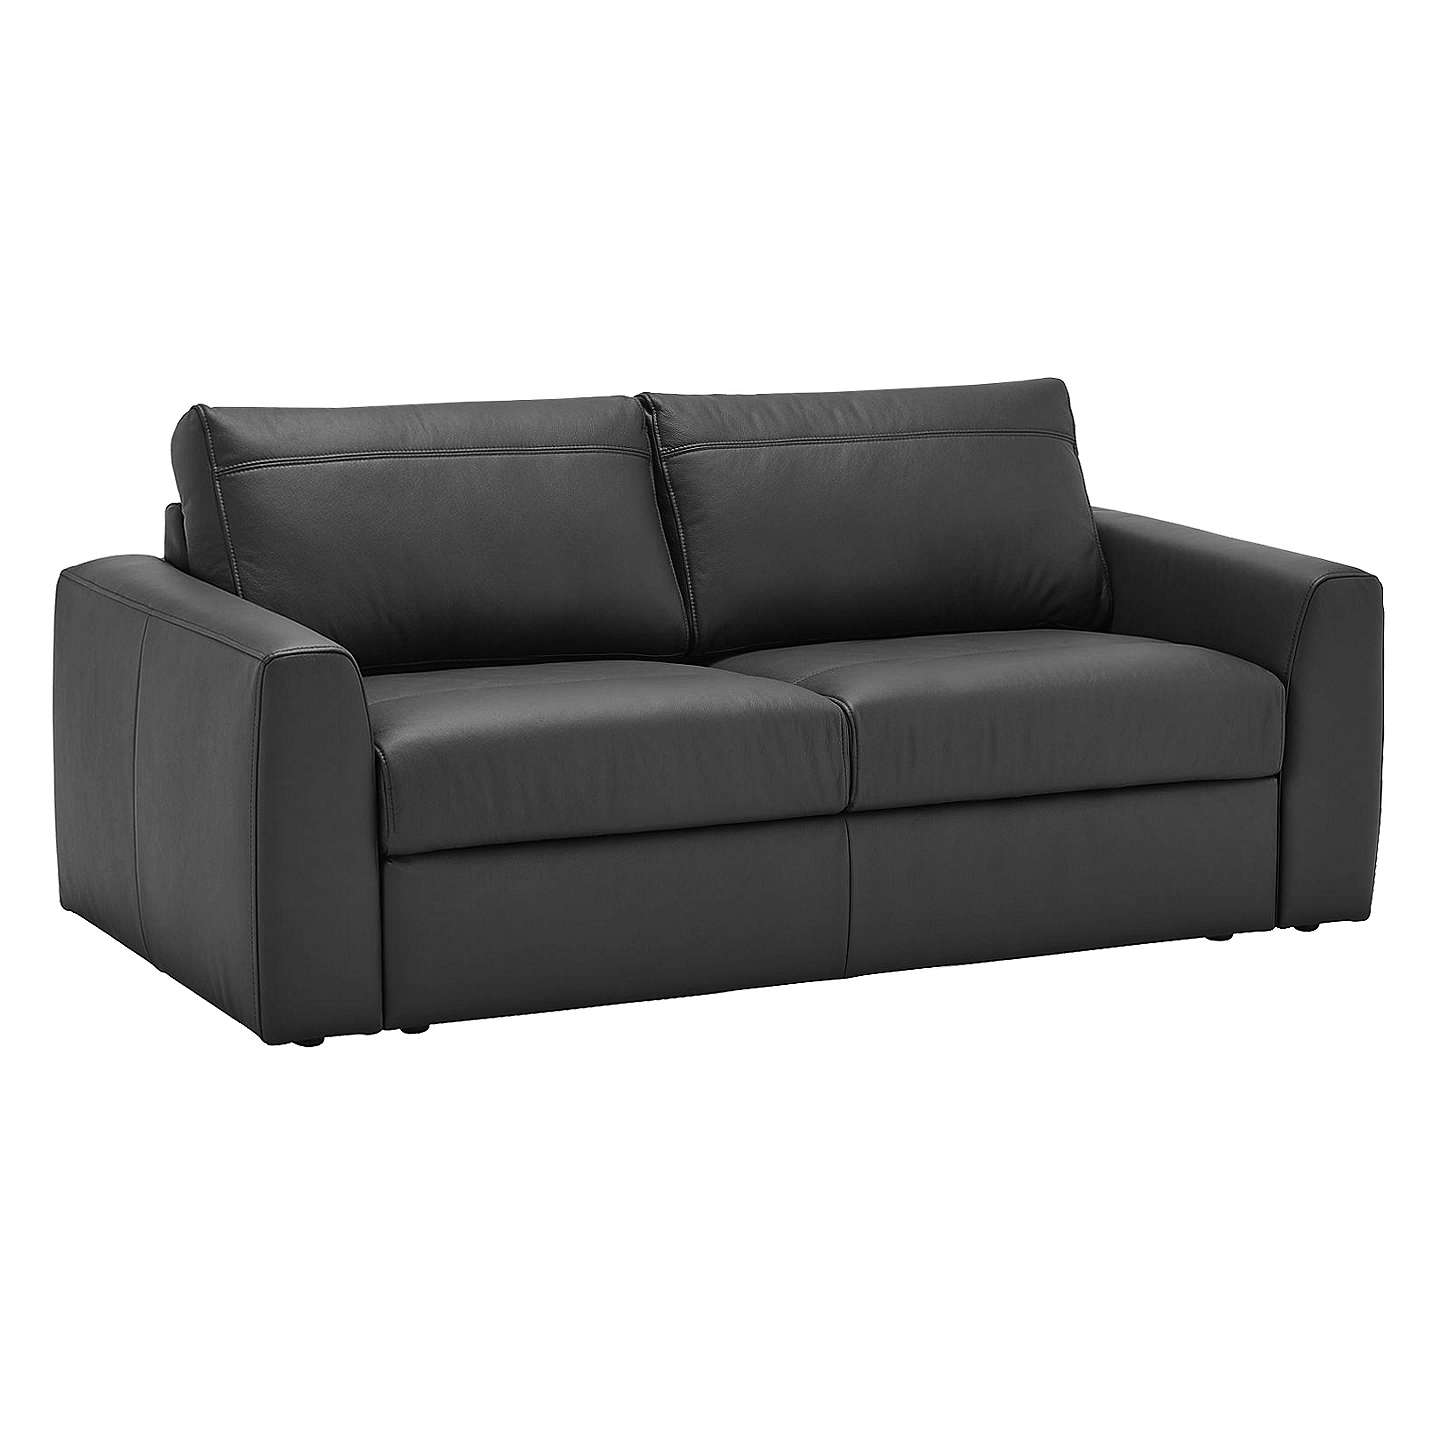 House By John Lewis Finlay II Sofa Bed Leather With Foam